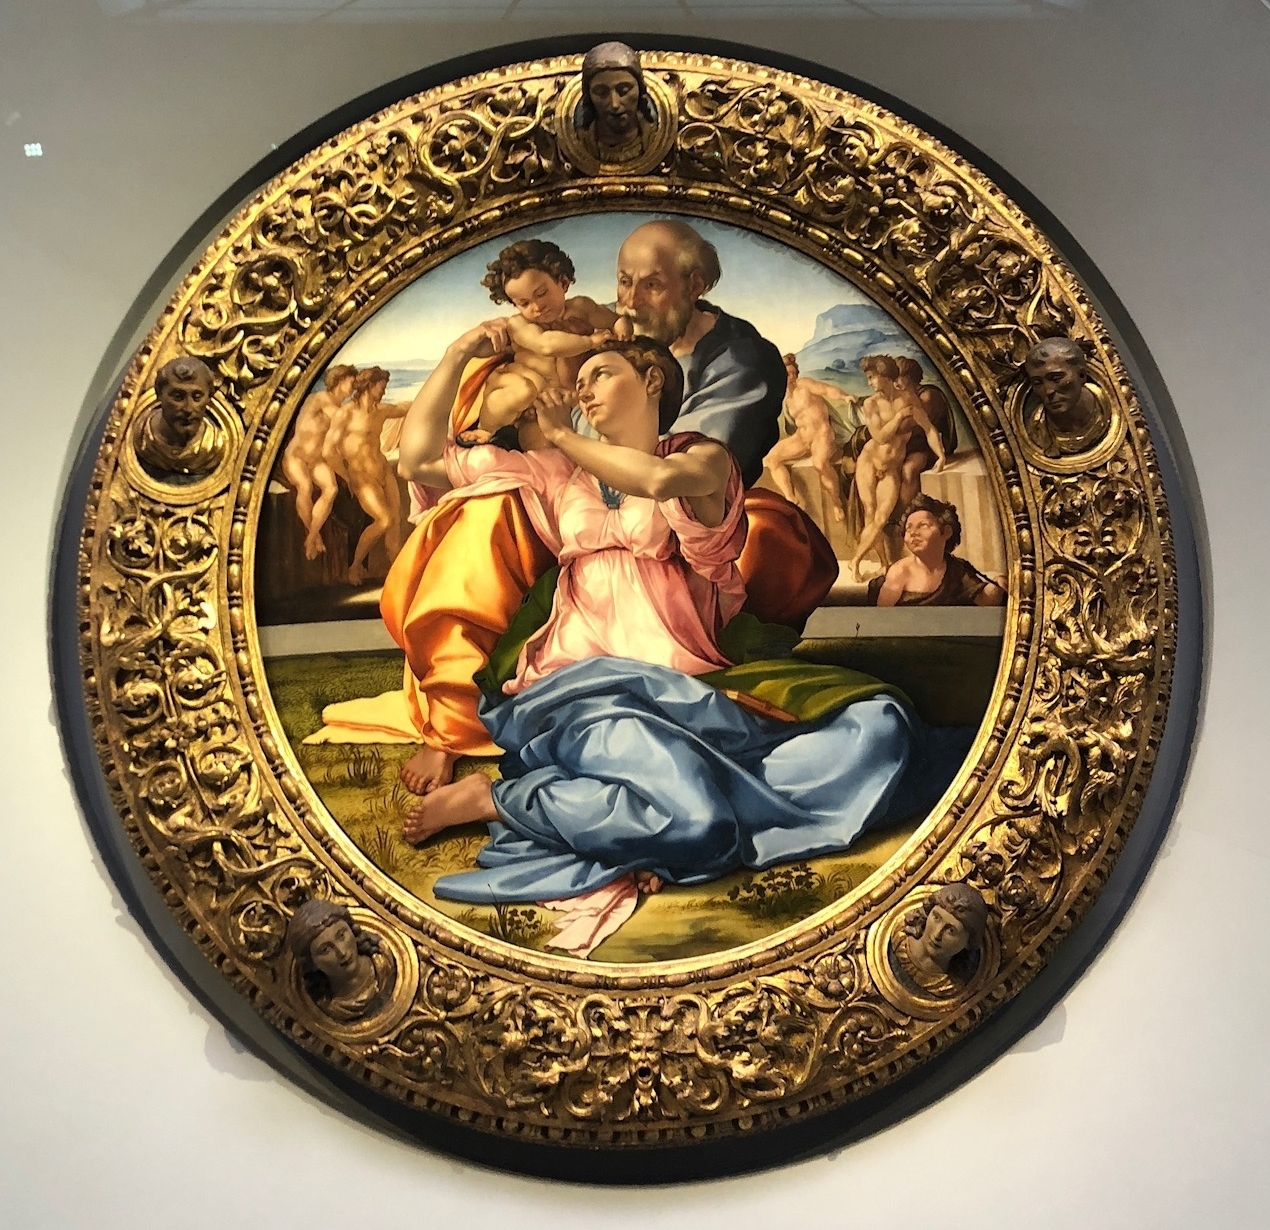 Doni Tondo, circa 1507, oil and tempera on panel by Michelangelo at the Uffizi Museum.